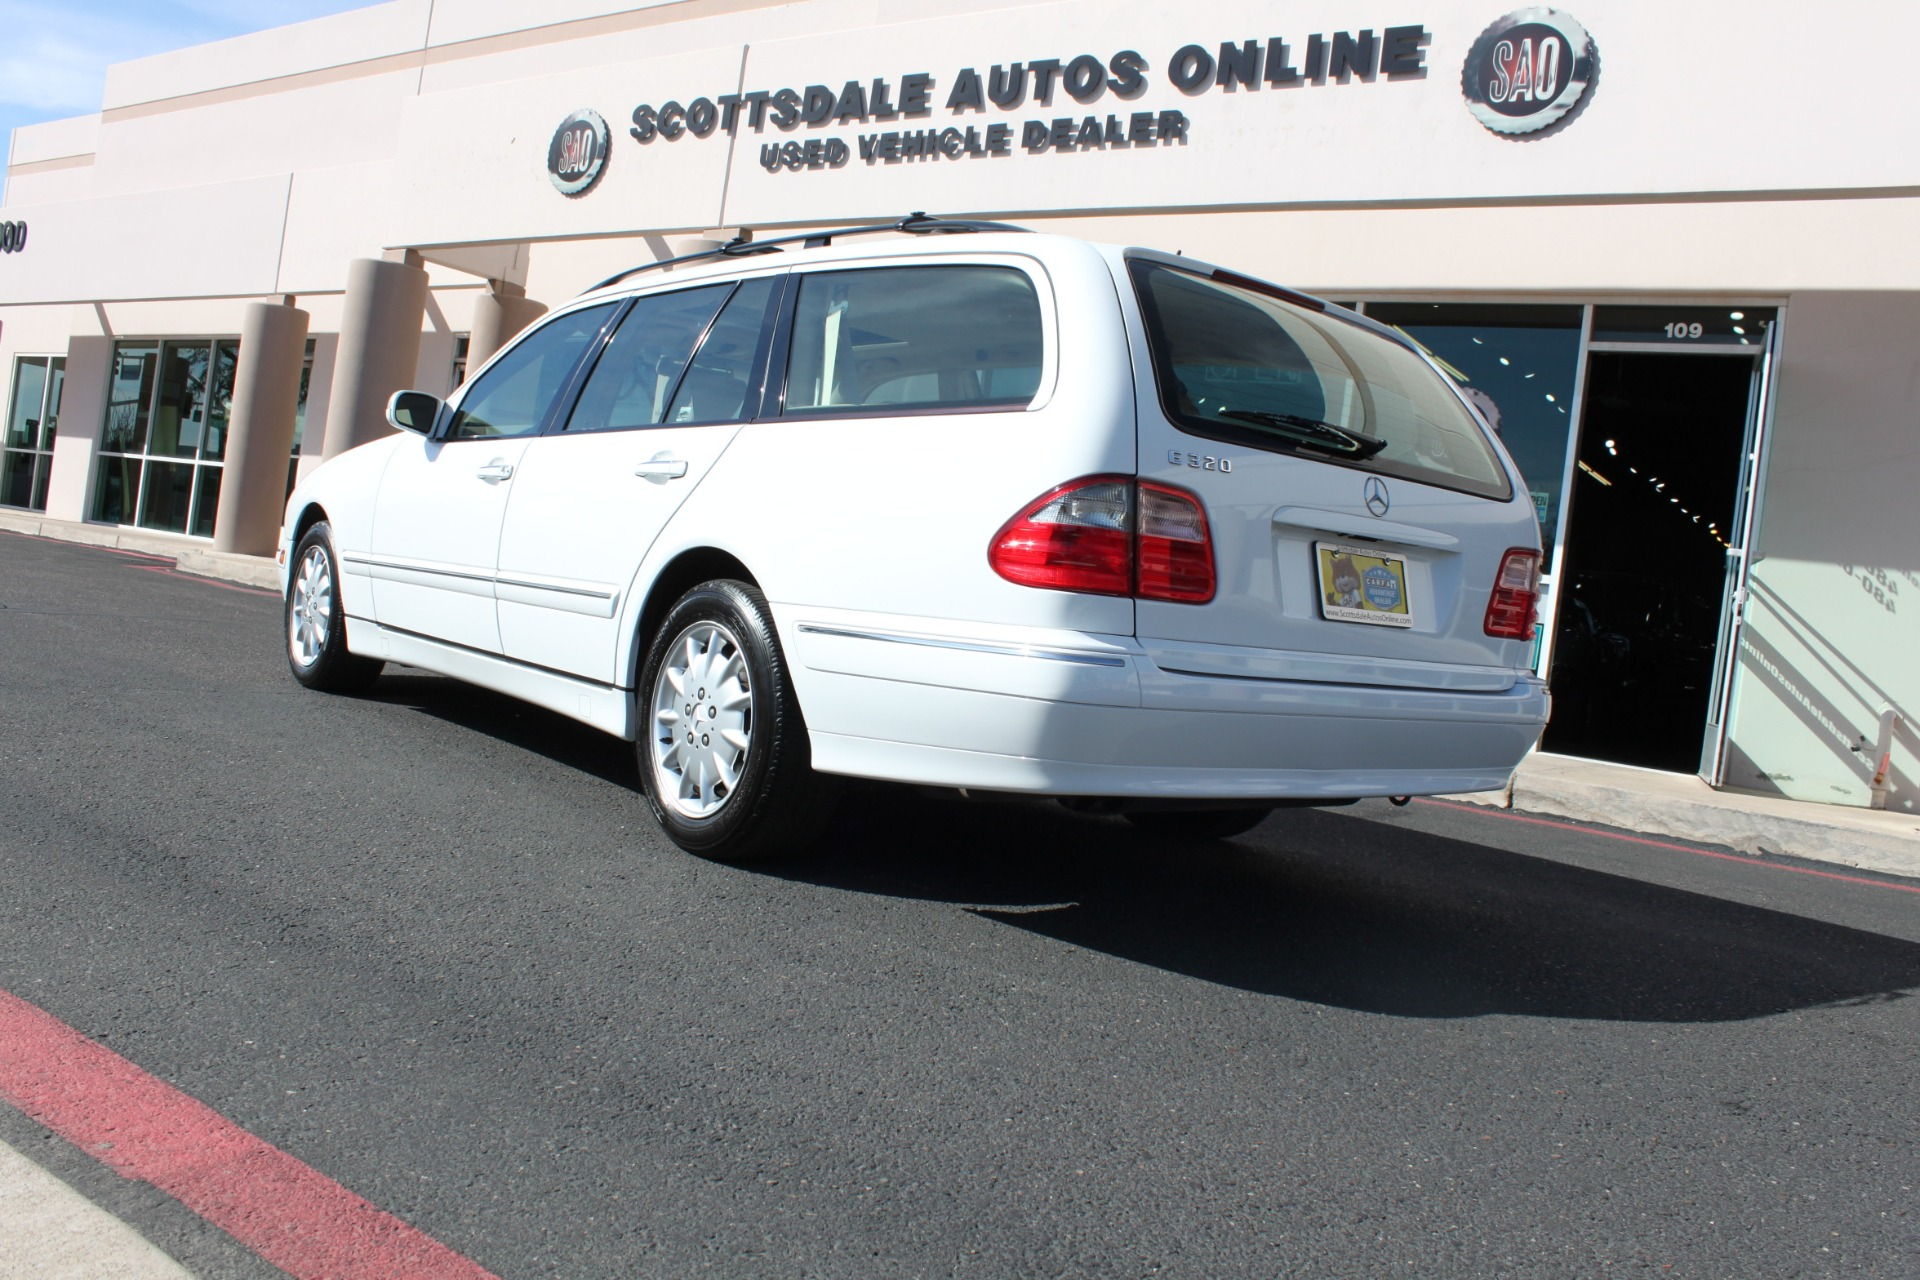 Used-2000-Mercedes-Benz-E-Class-Wagon-Toyota